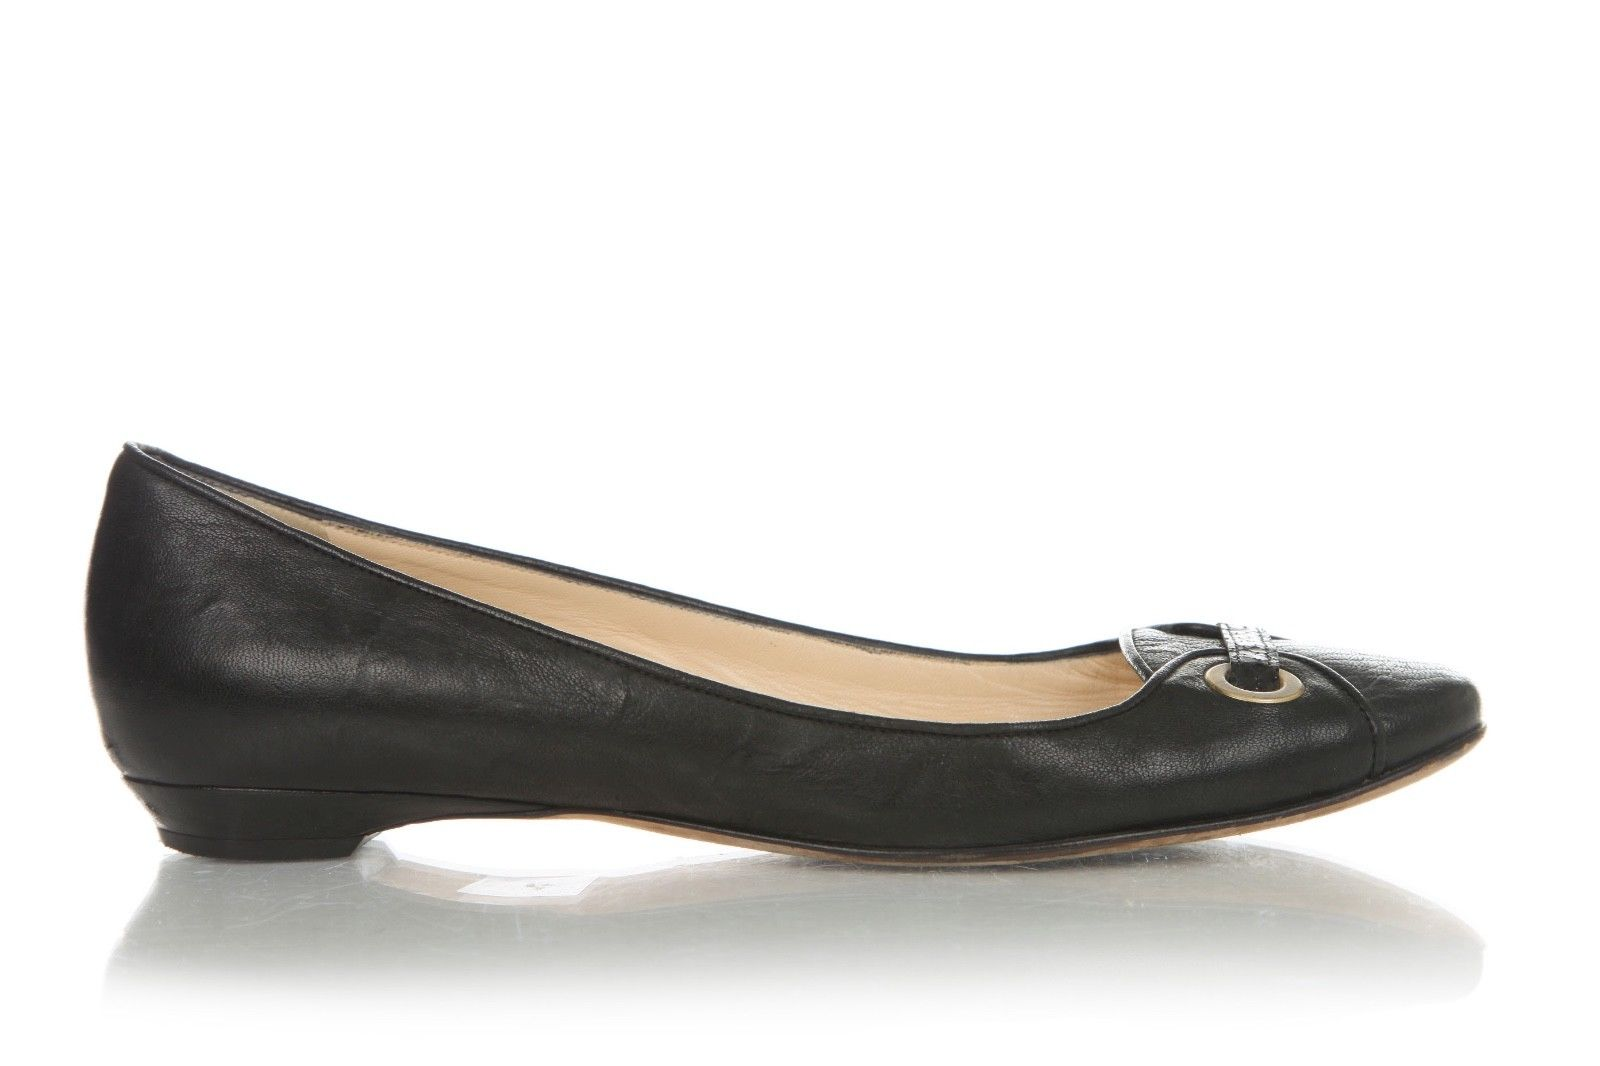 JIMMY CHOO Black Leather Flats With Brass Accent Size 39